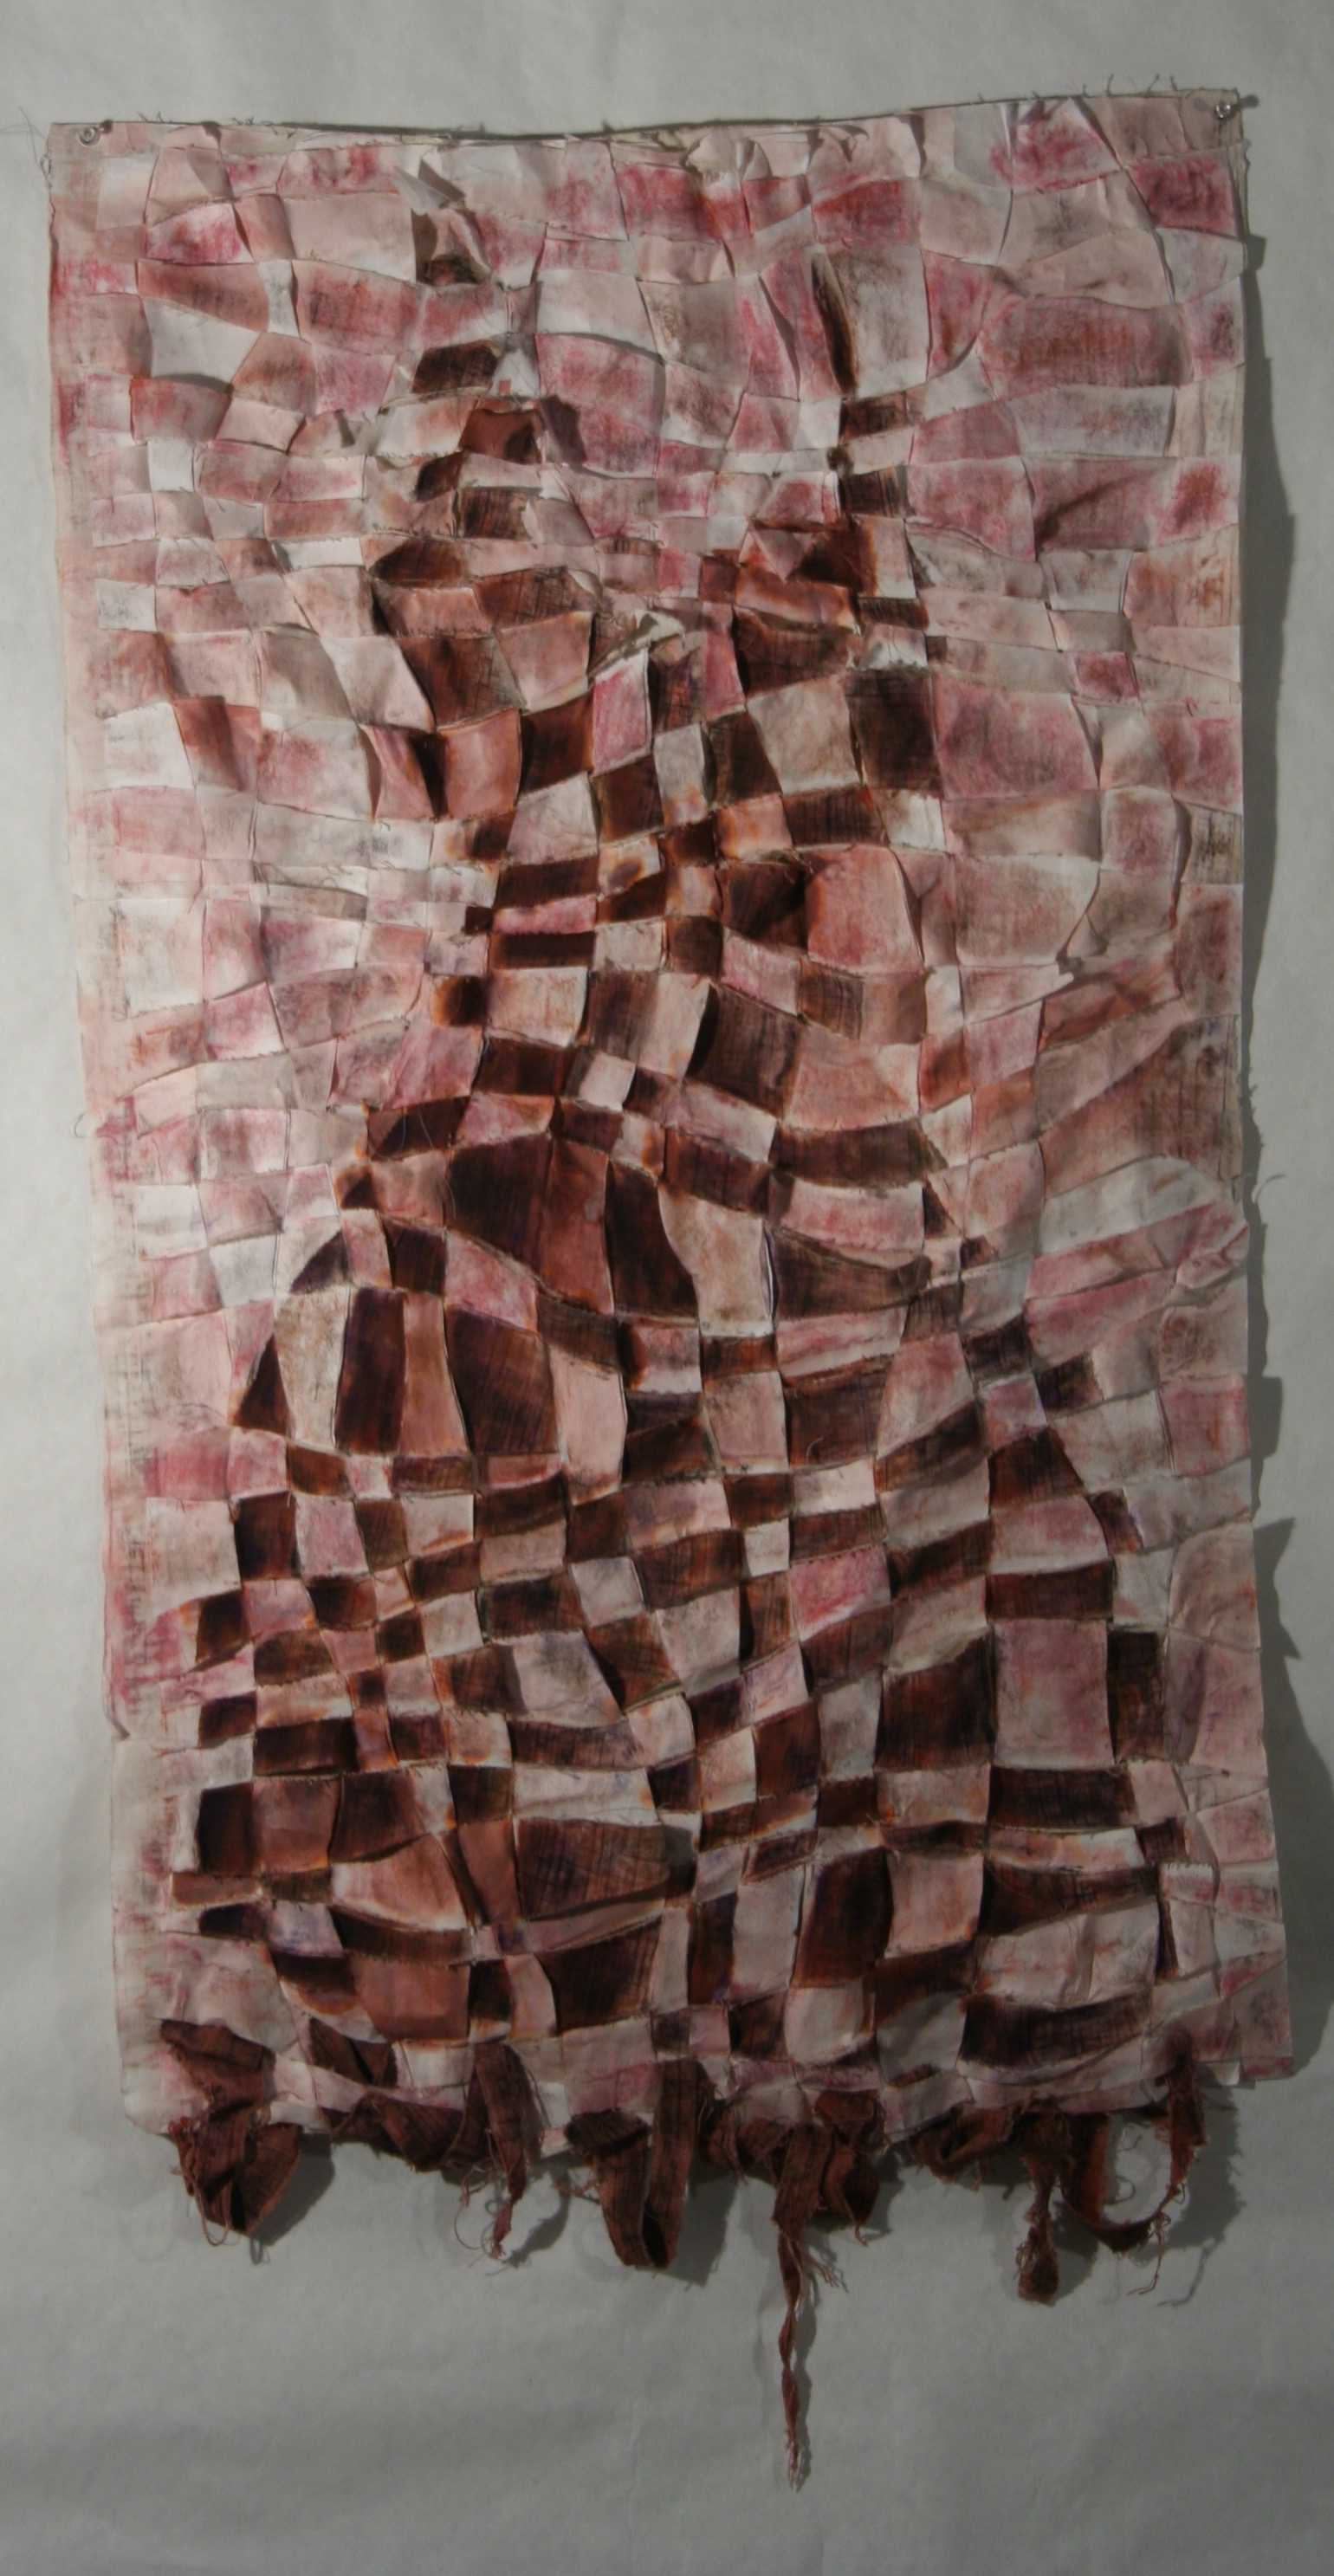 %22A+Memory%22%3A+%22This+is+rice+paper+woven+with+fabric.++Both+are+covered+with+ink+and+pastels.++This+was+my+first+integration+of+fabric+into+my+work+%E2%80%94+besides+canvas+%E2%80%94+and+I+see+it+as+a+representation+of+a+fragmented+memory.++Something+intriguing+in+the+way+that+an+old+piece+of+clothing+was+once+beautiful.%E2%80%9D